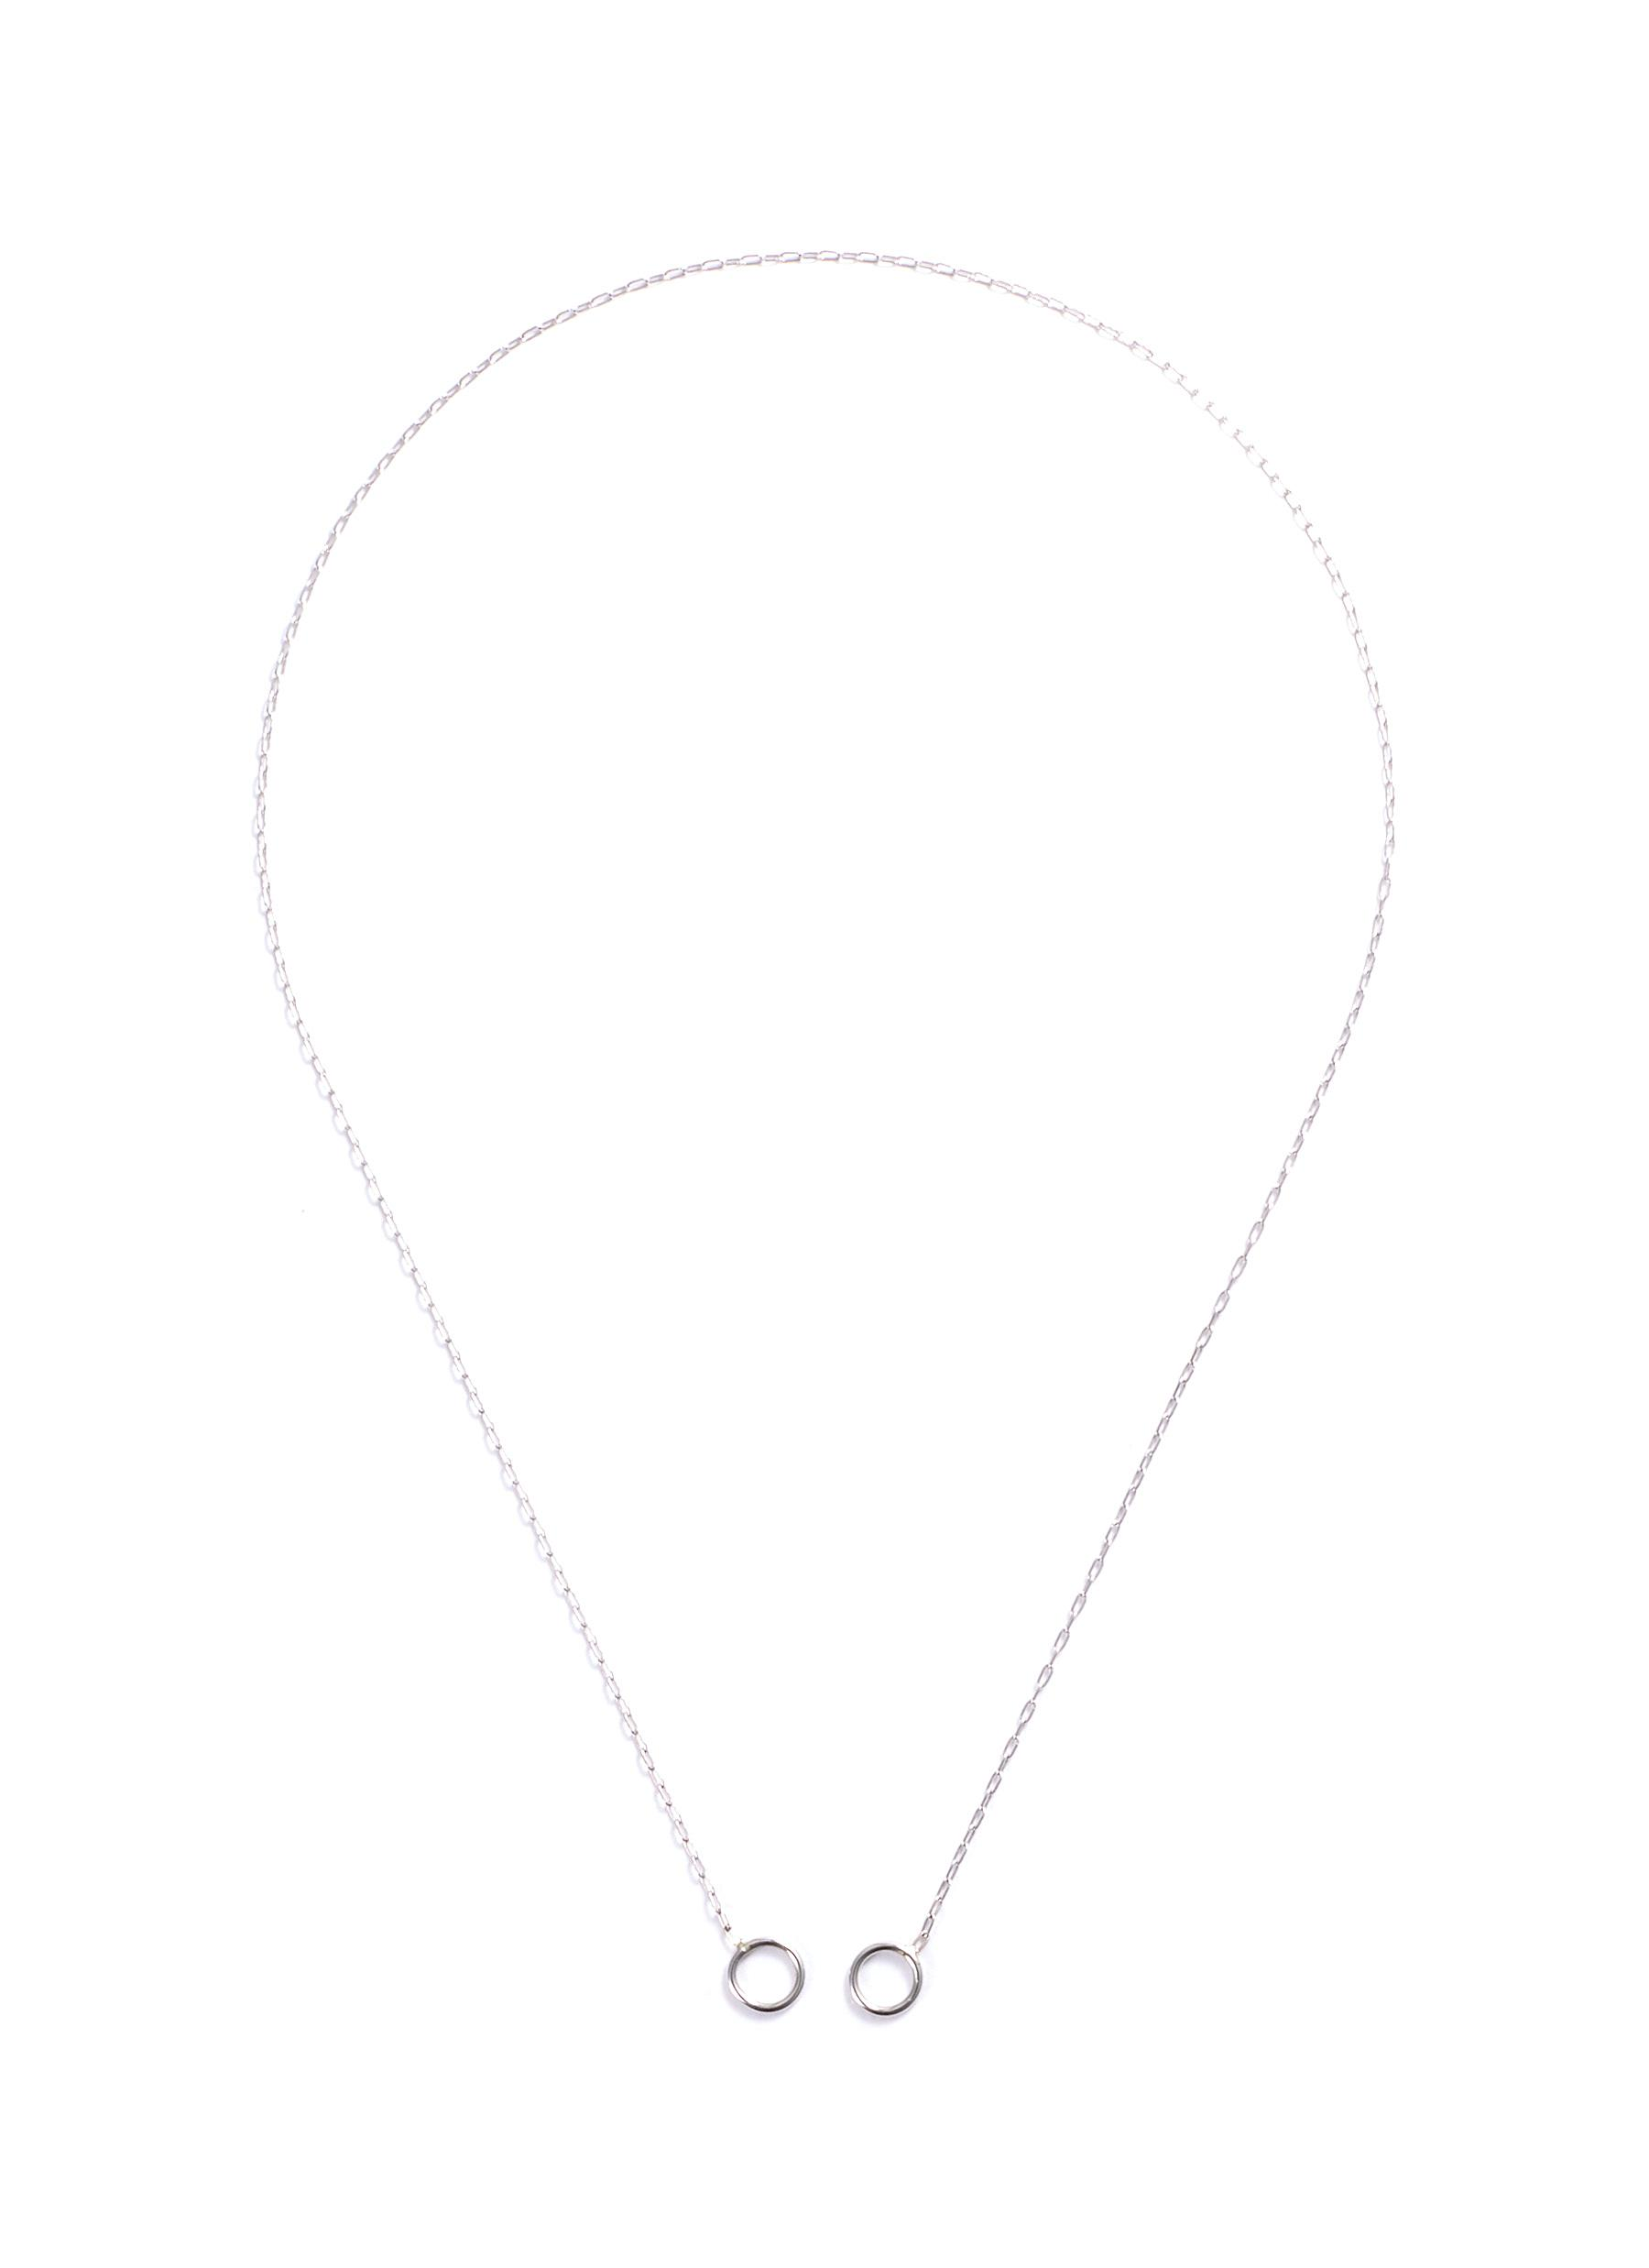 2 loop 14k white gold square link chain